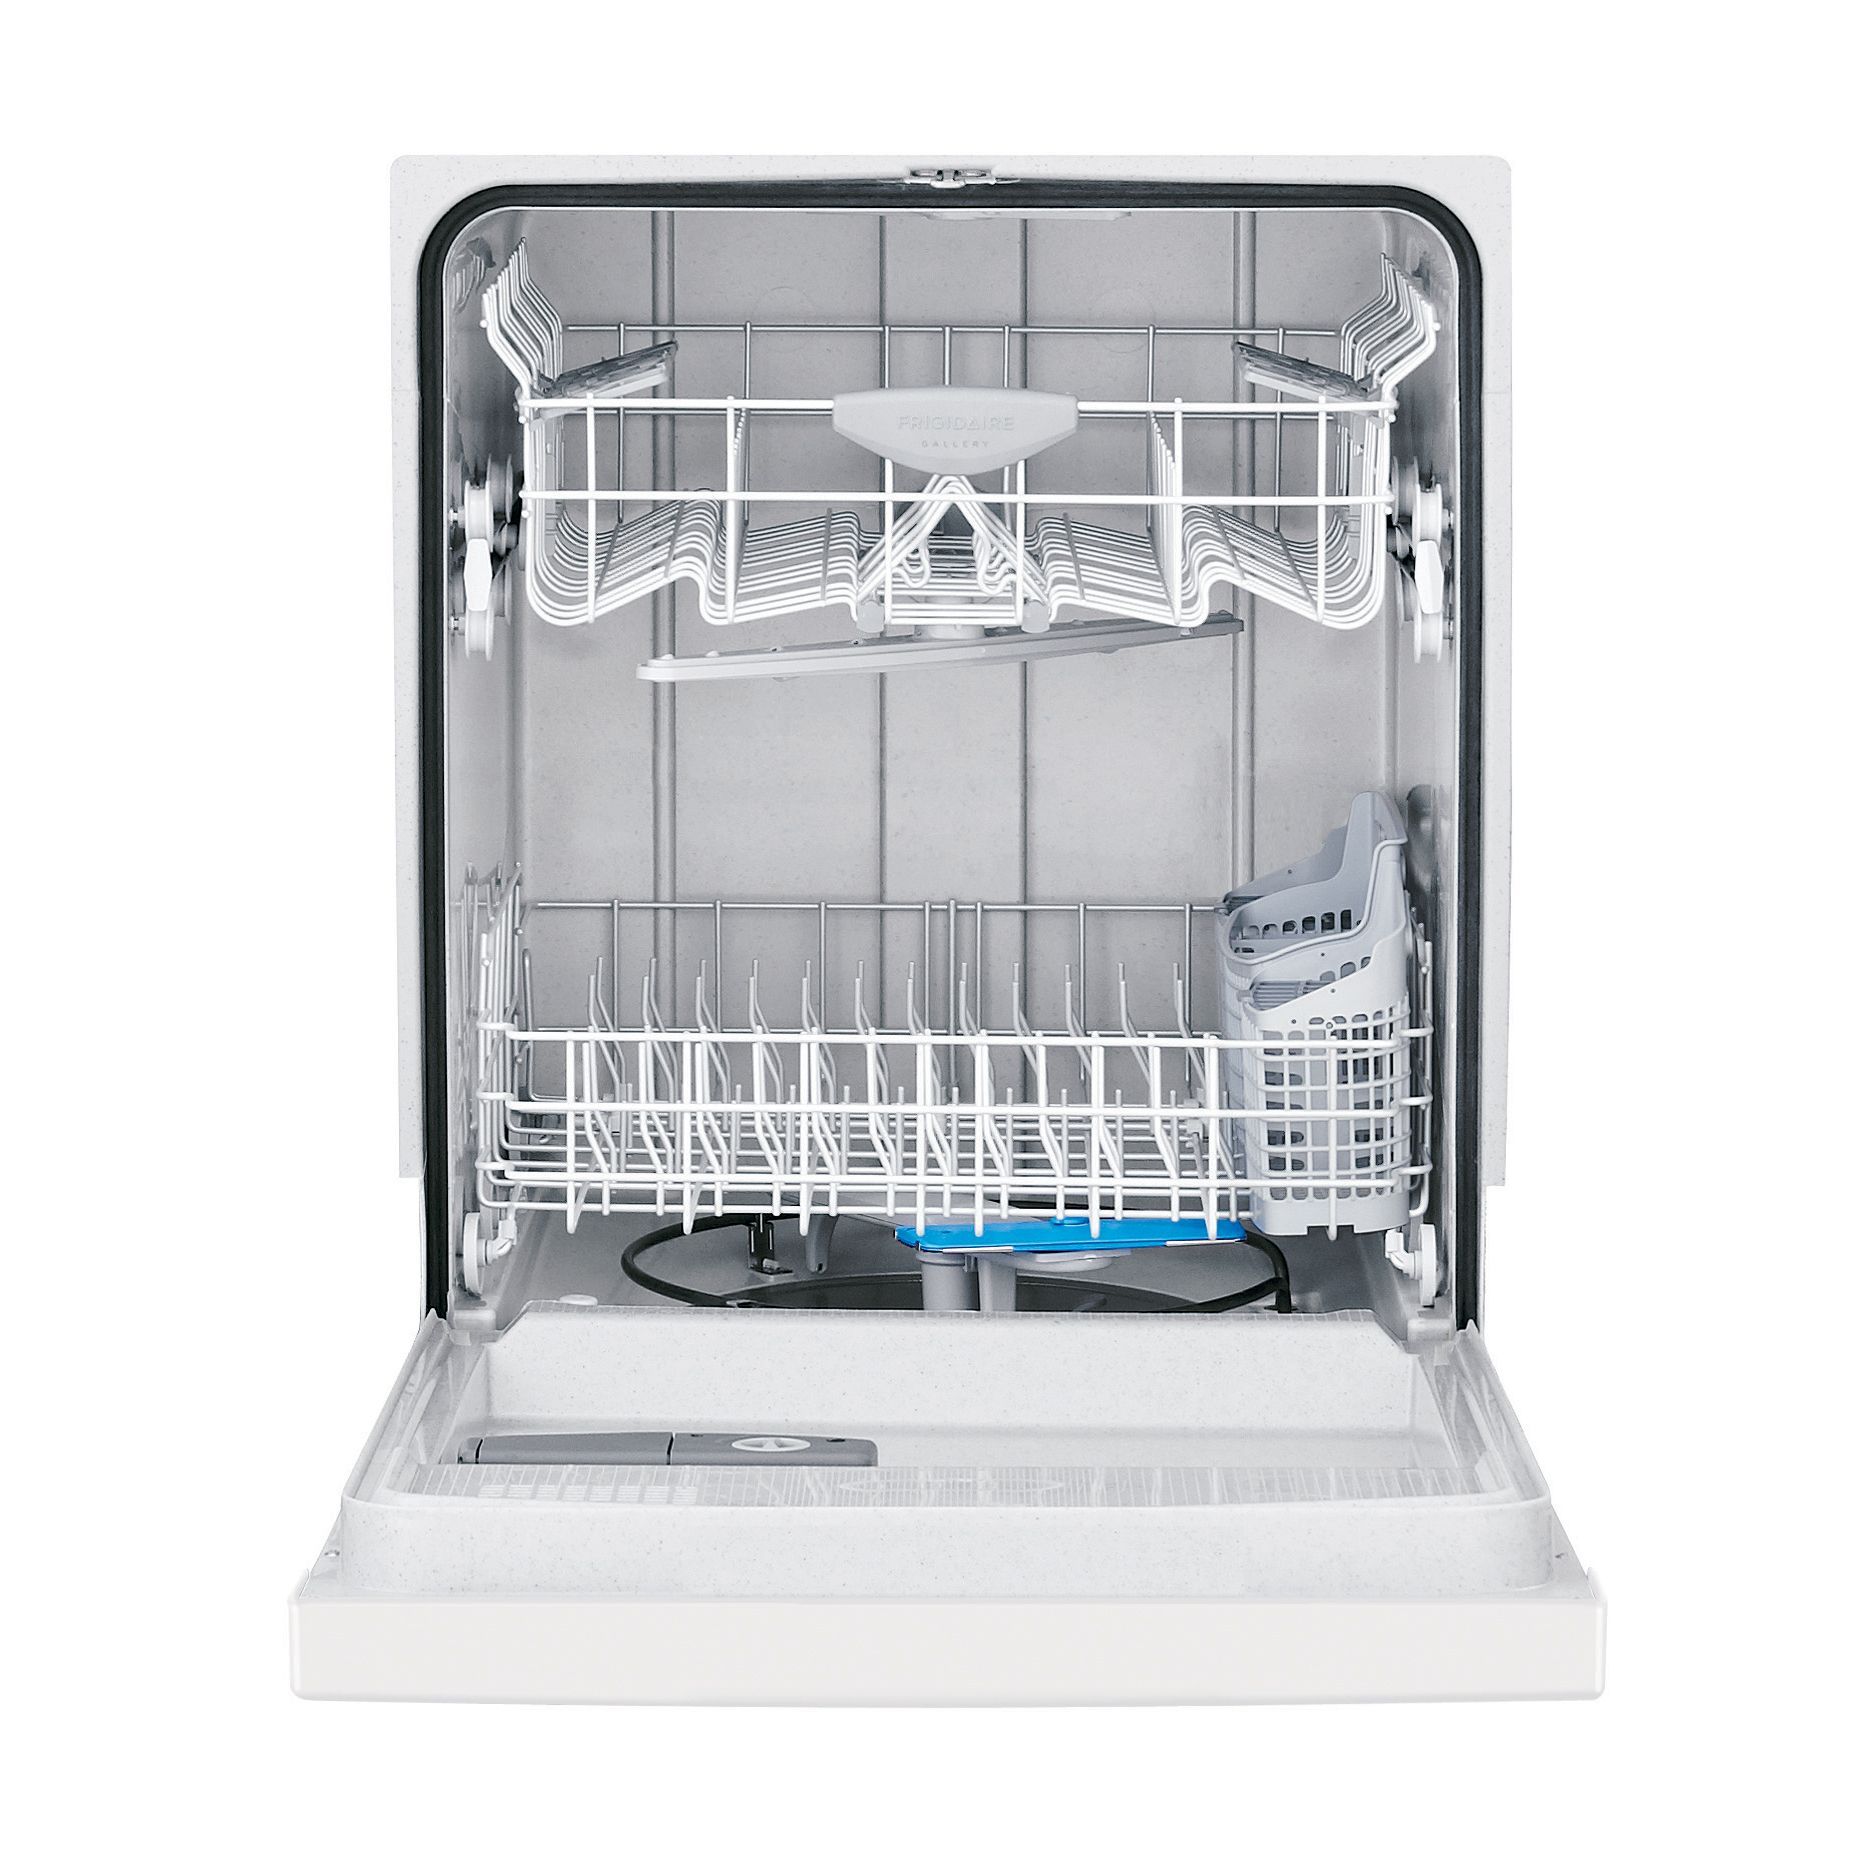 "Frigidaire FGBD2445NW 24"" White Built-In Dishwasher"